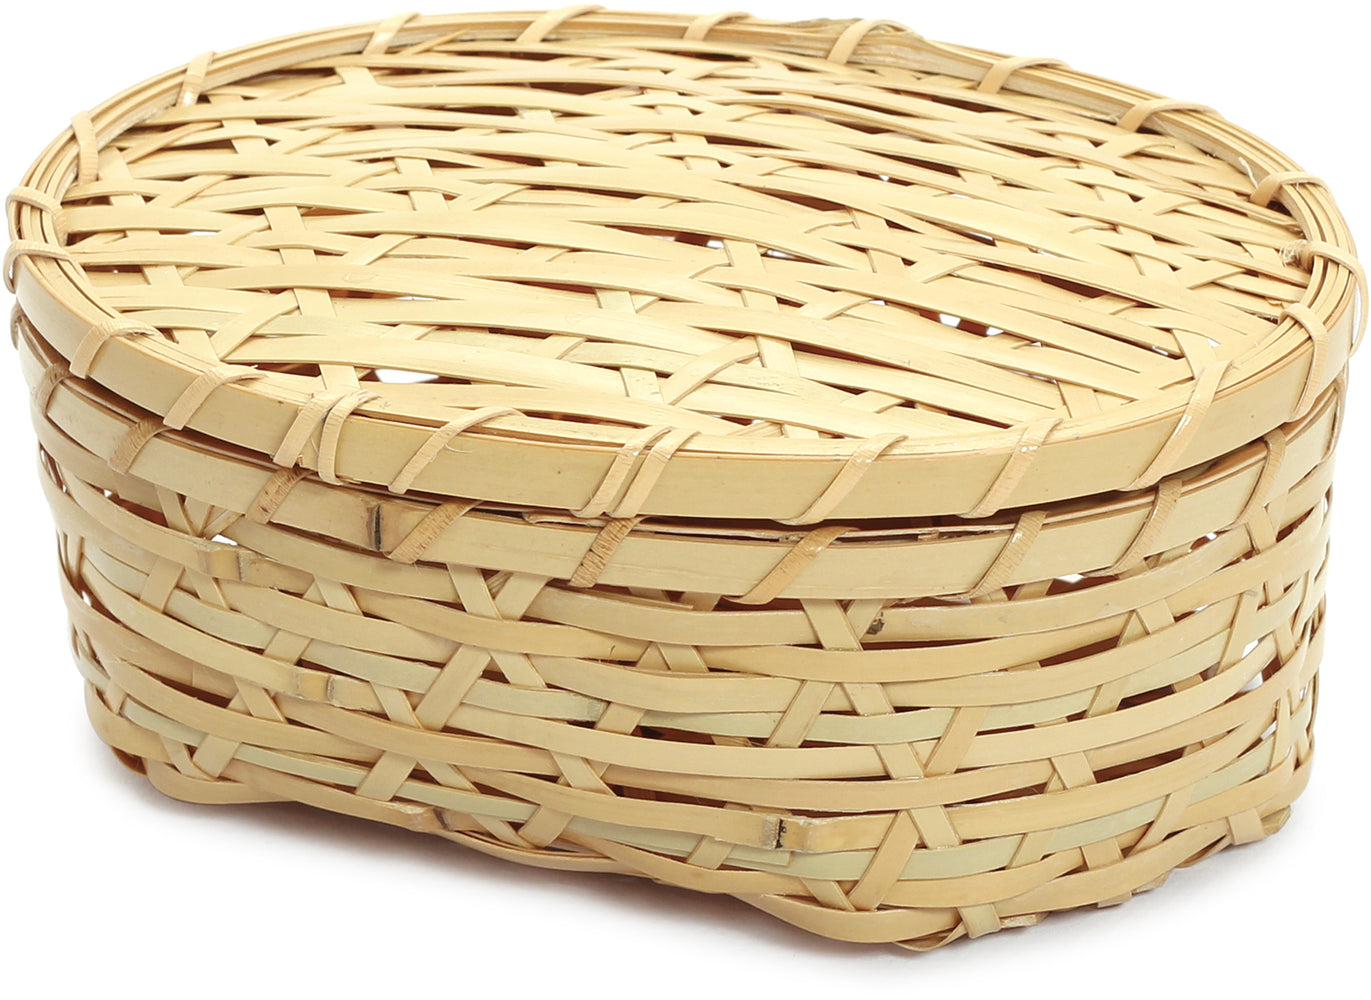 Weaved Bamboo Bento Box Oval | Large by Yamaki - Bento&co Japanese Bento Lunch Boxes and Kitchenware Specialists